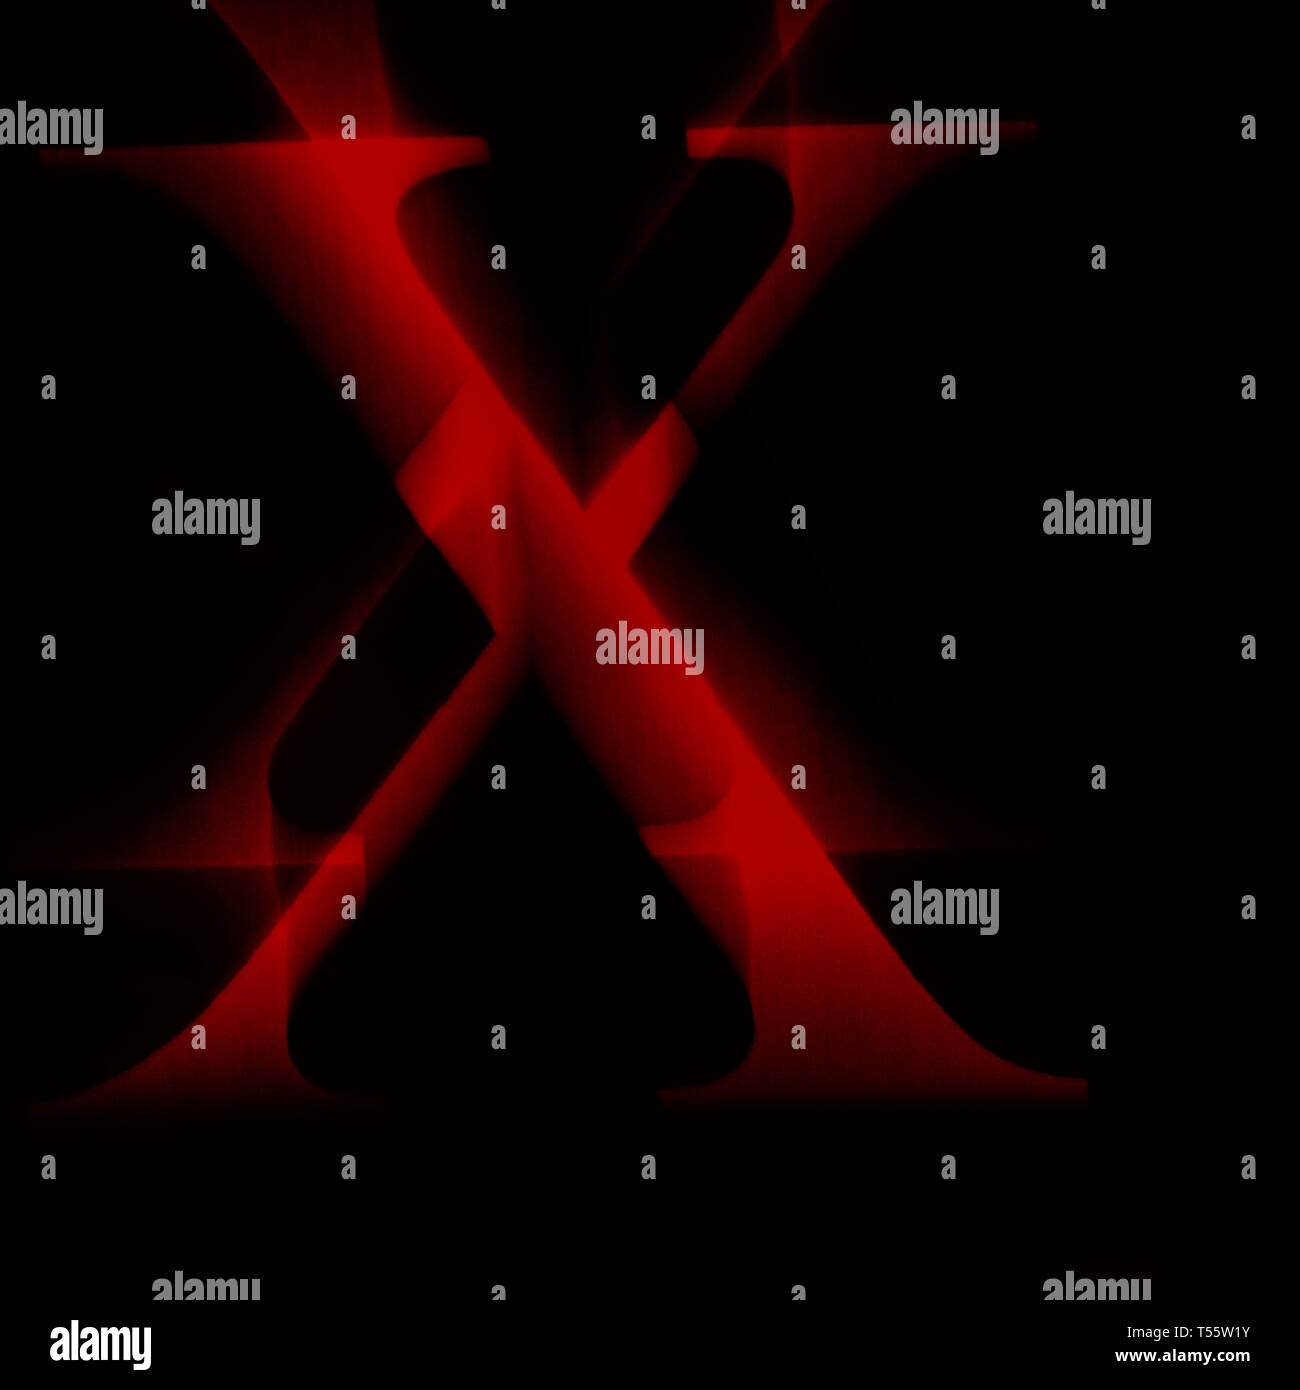 Illustration of red letter X's against black background - Stock Image